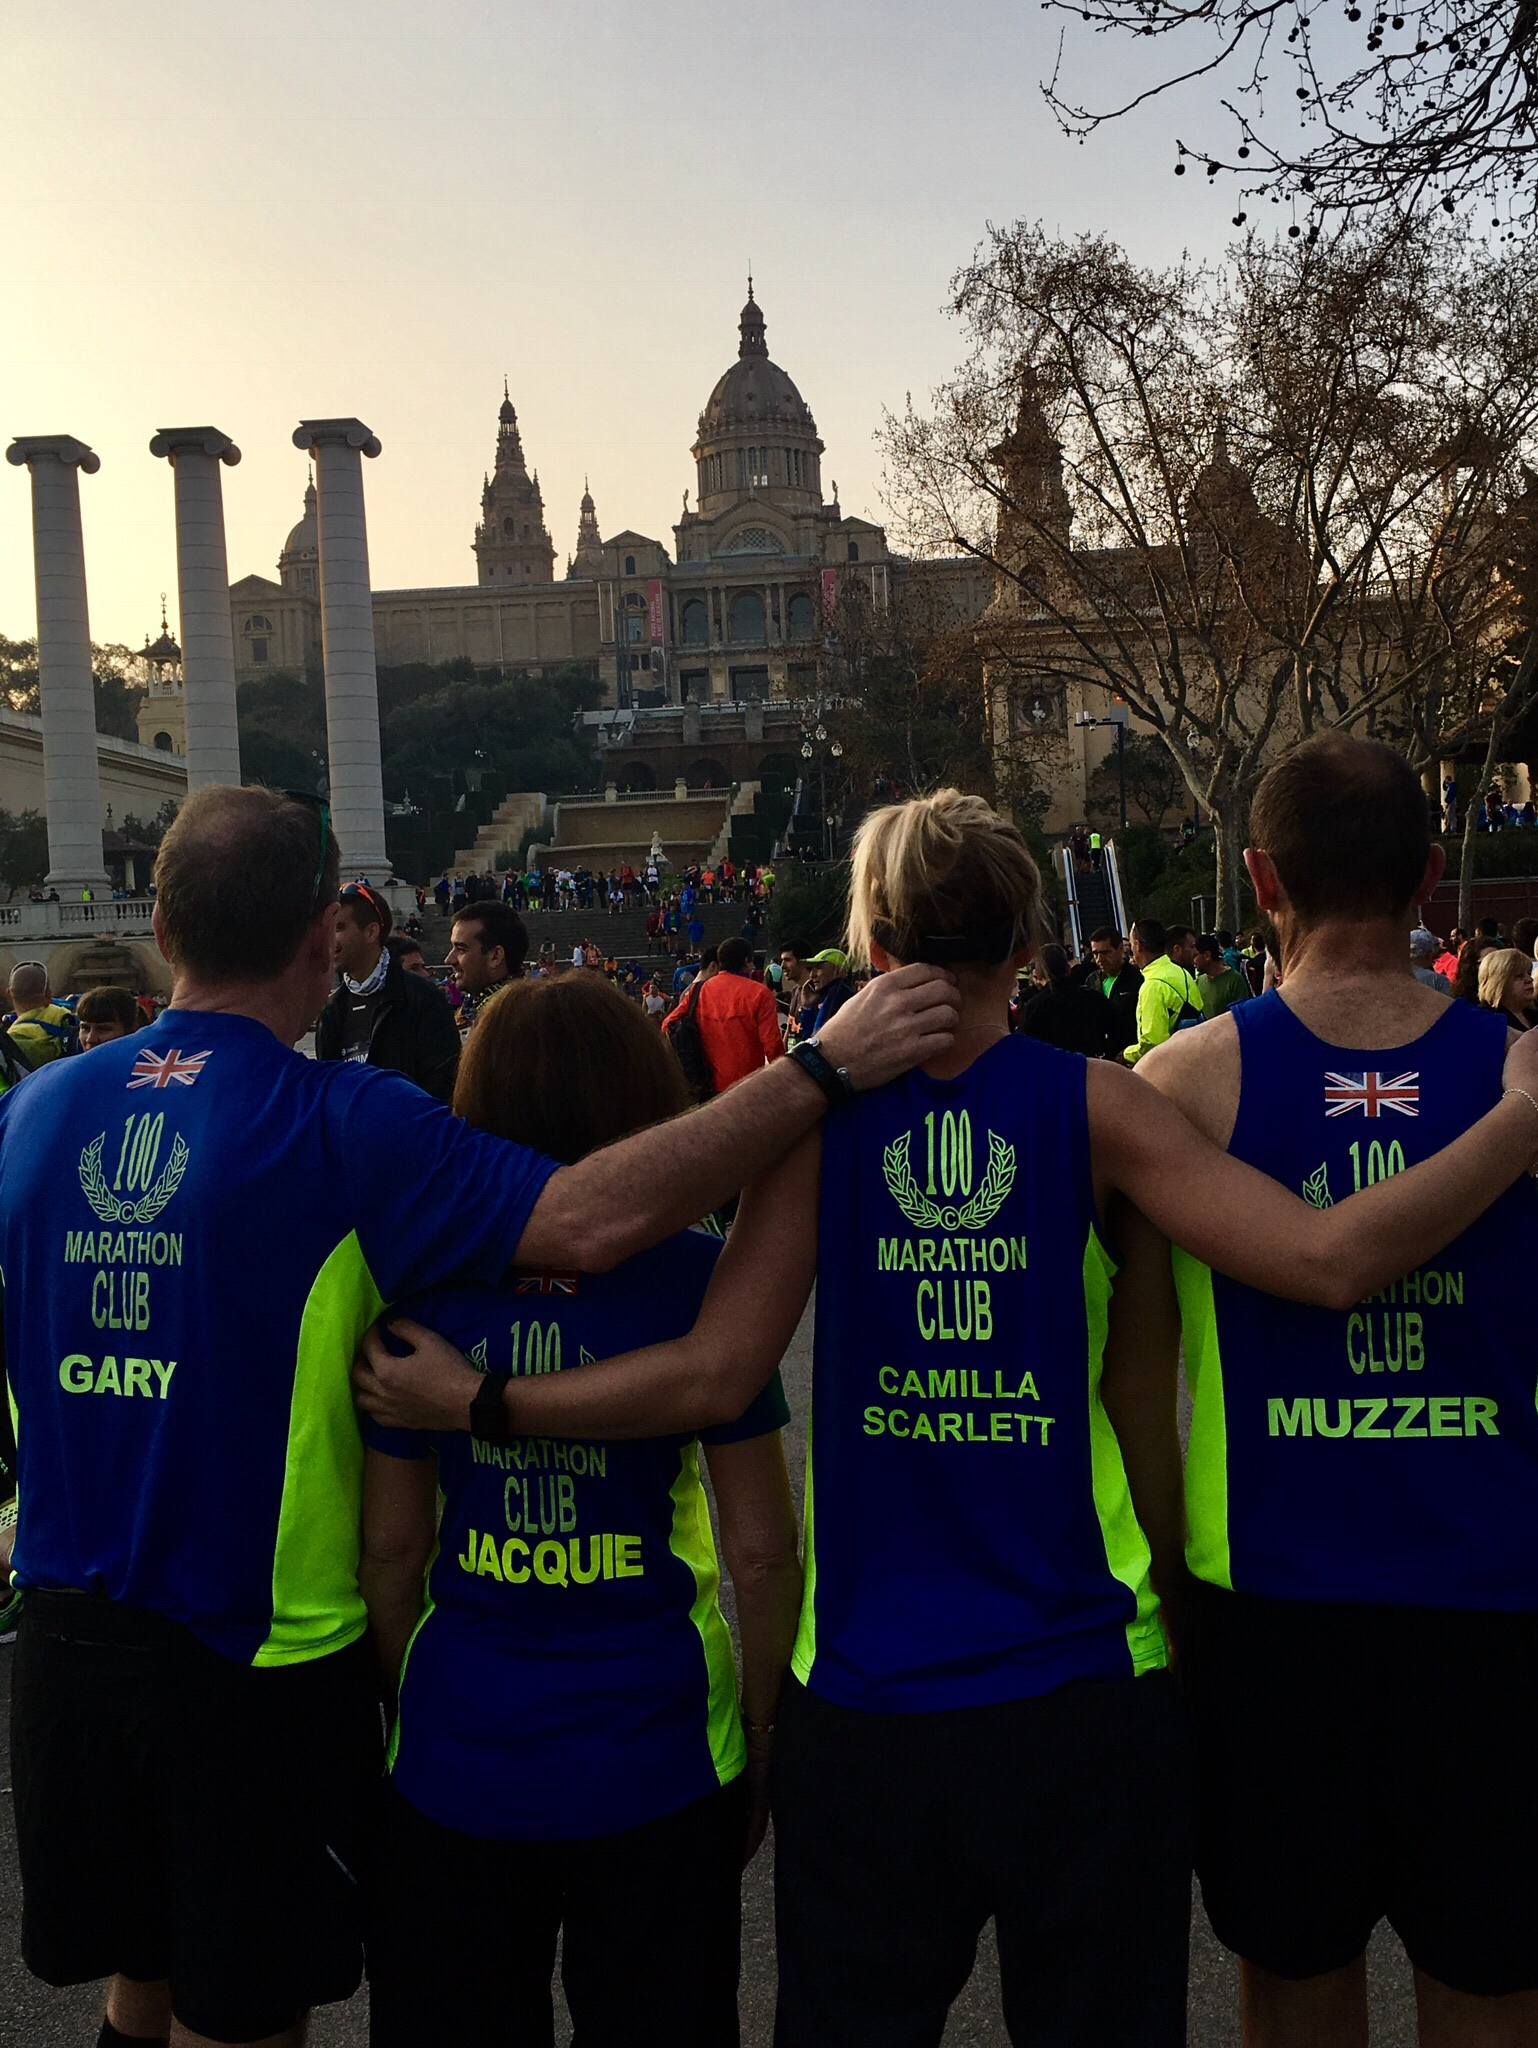 Barcelona marathon start - 100 club shirts